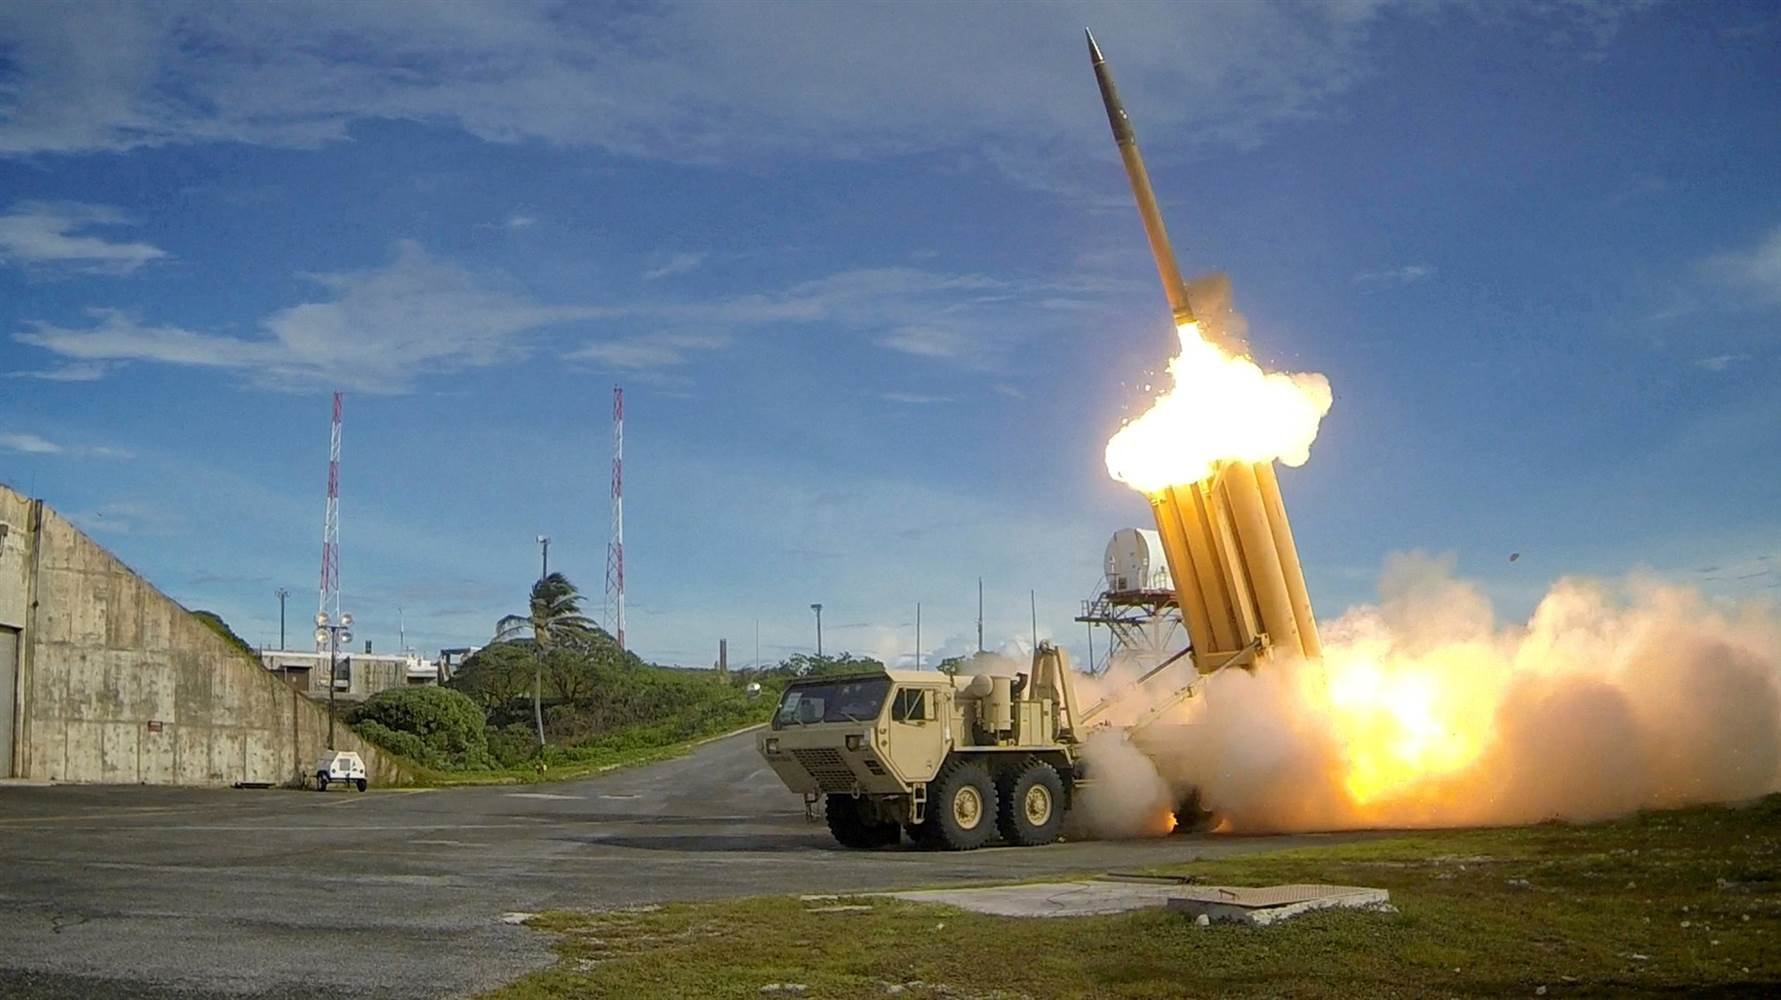 USA tests missile-defense system over Pacific Ocean